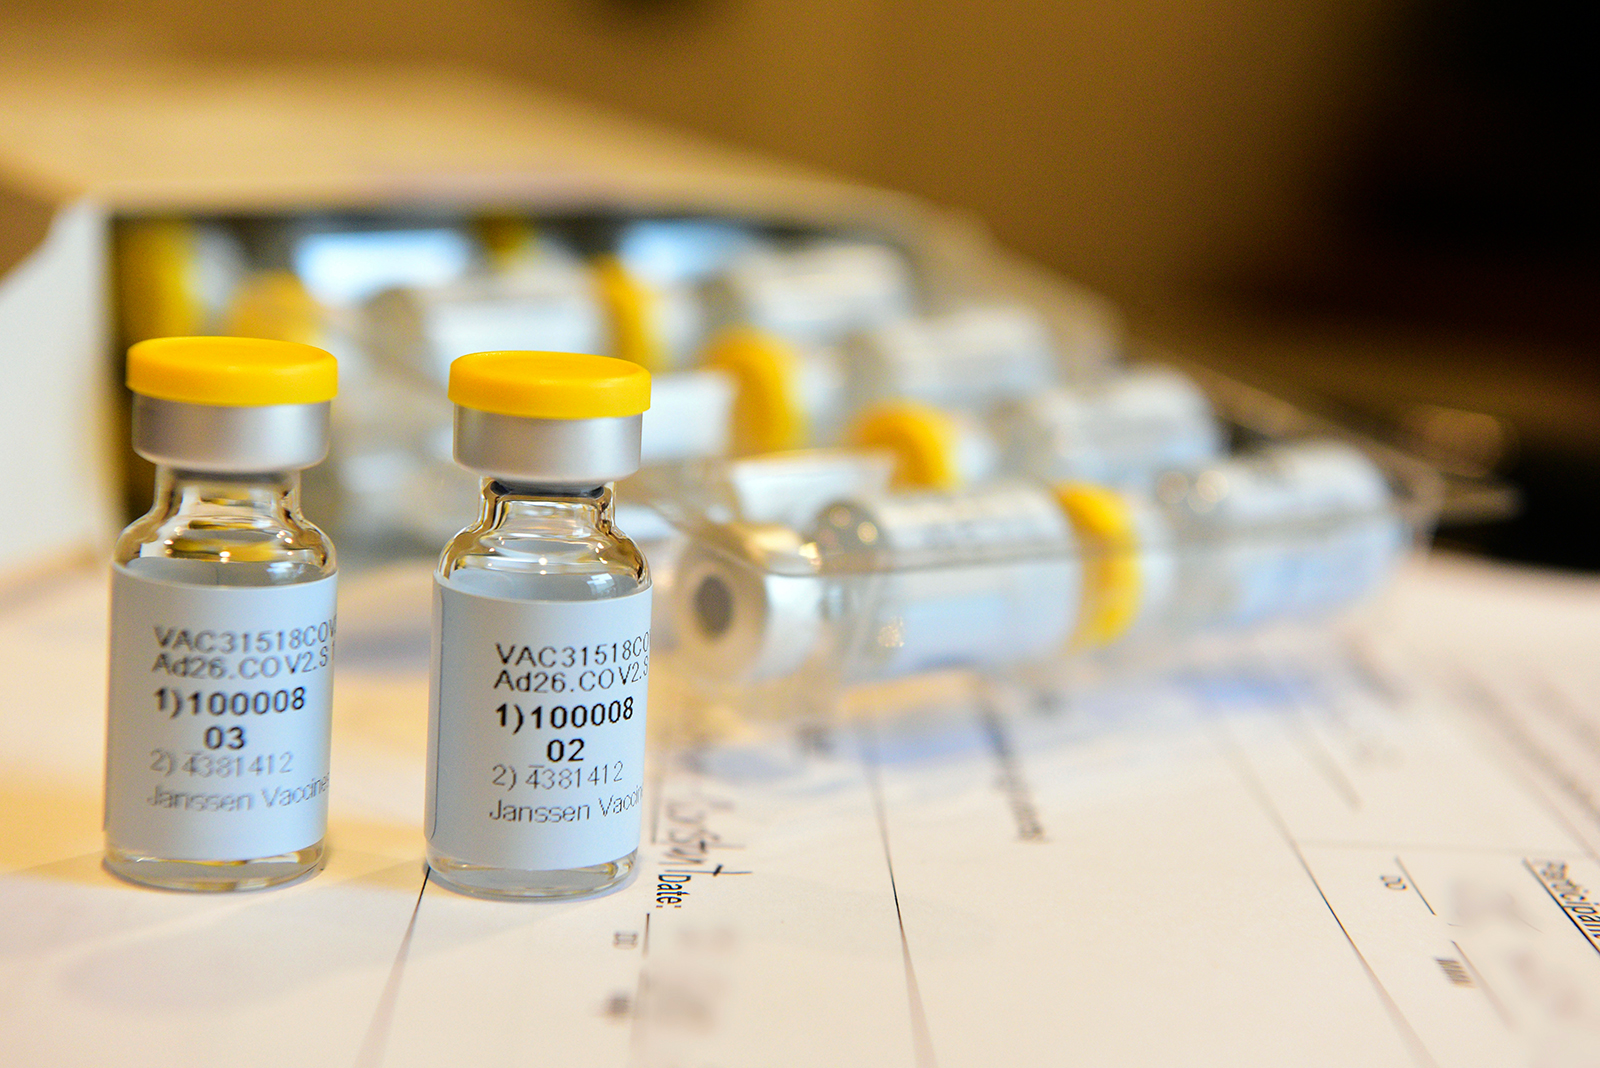 A single-dose COVID-19 vaccine being developed by Johnson & Johnson is seen in September.